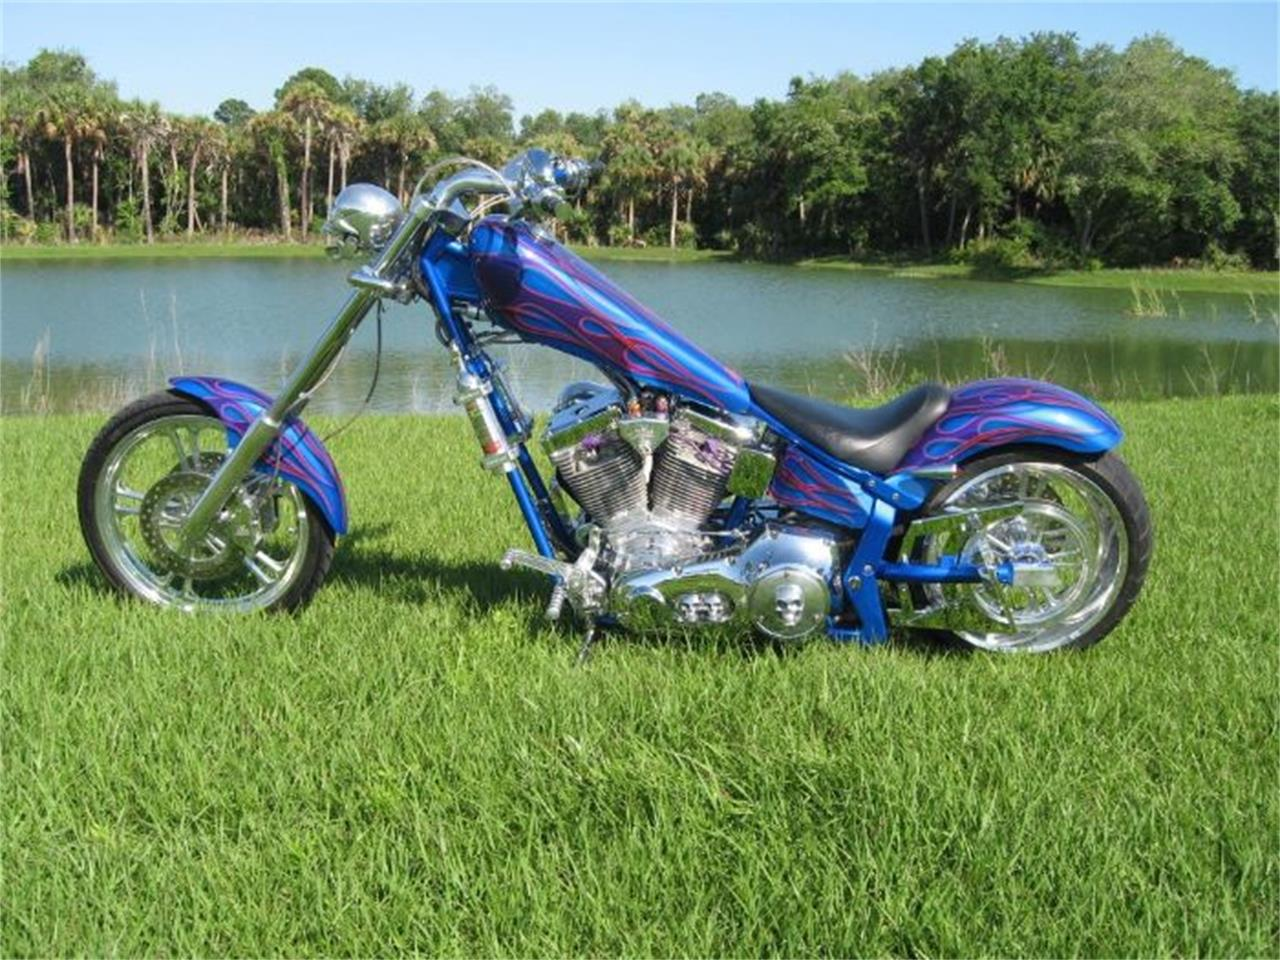 2002 American Ironhorse Texas Chopper for sale in Cadillac, MI – photo 6